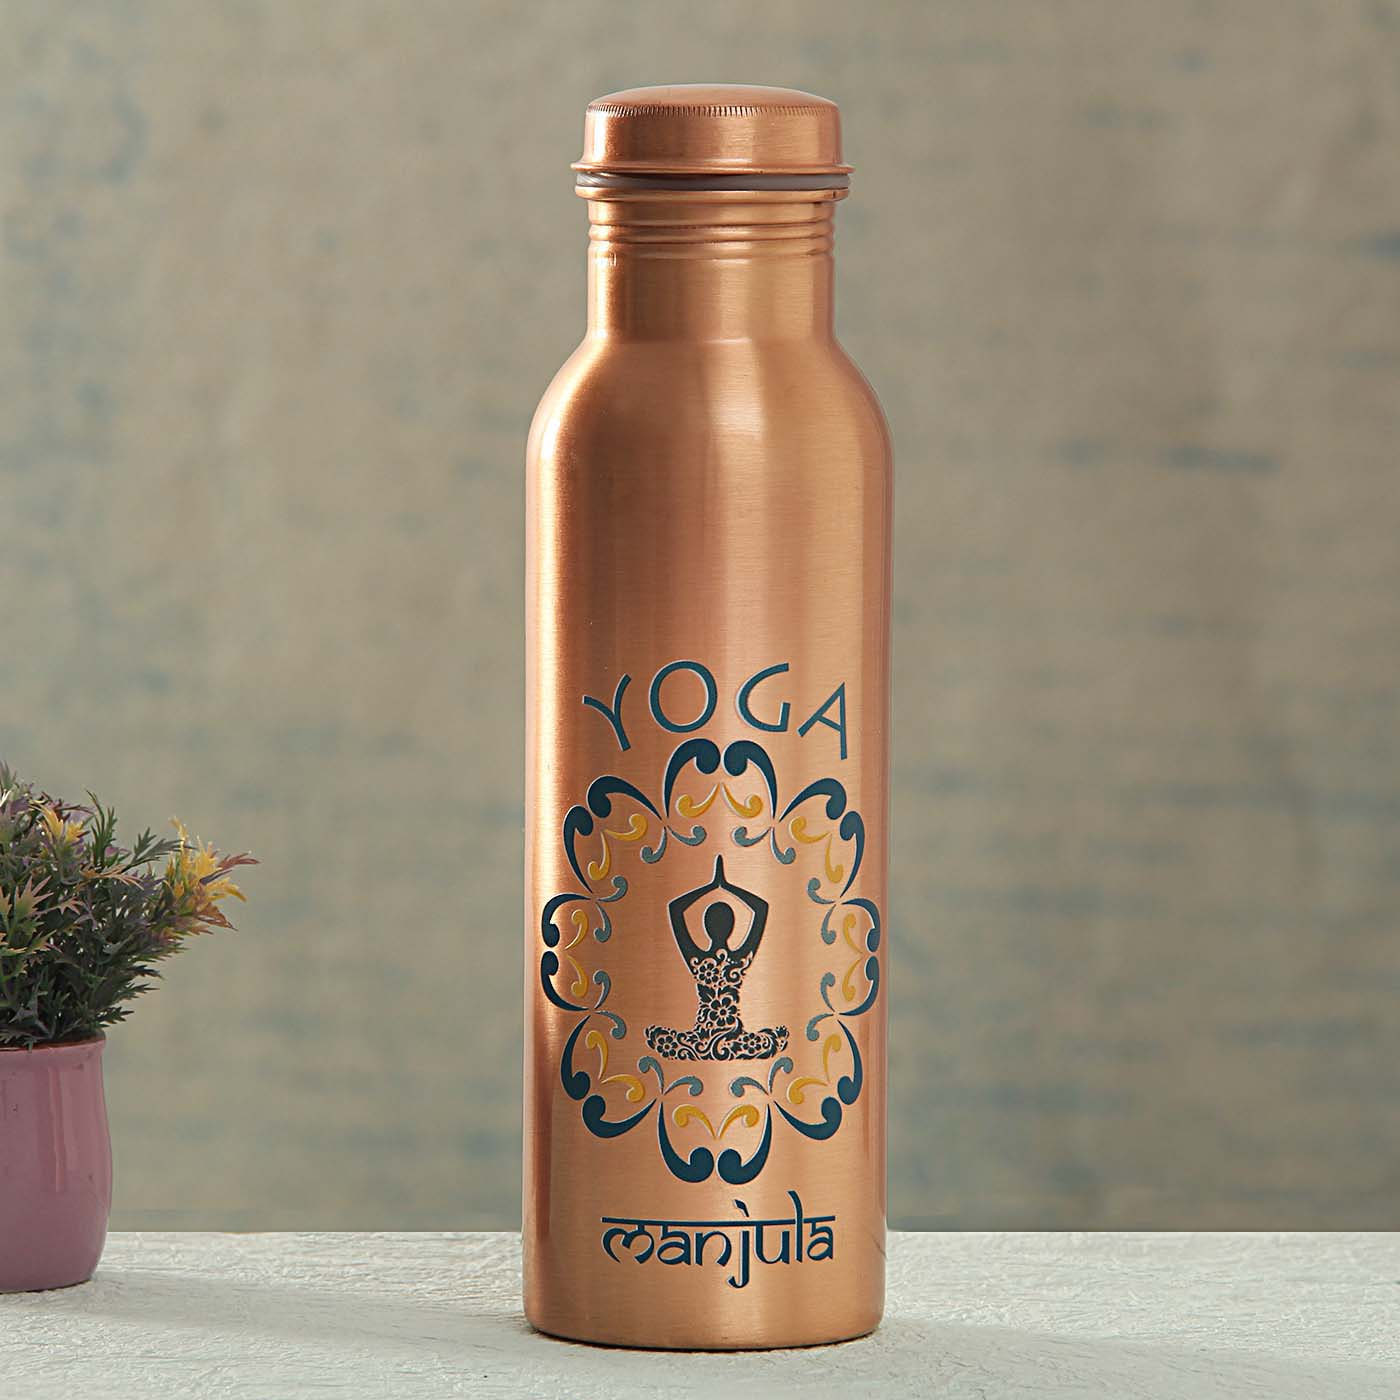 My Yoga Personalized Copper Bottle